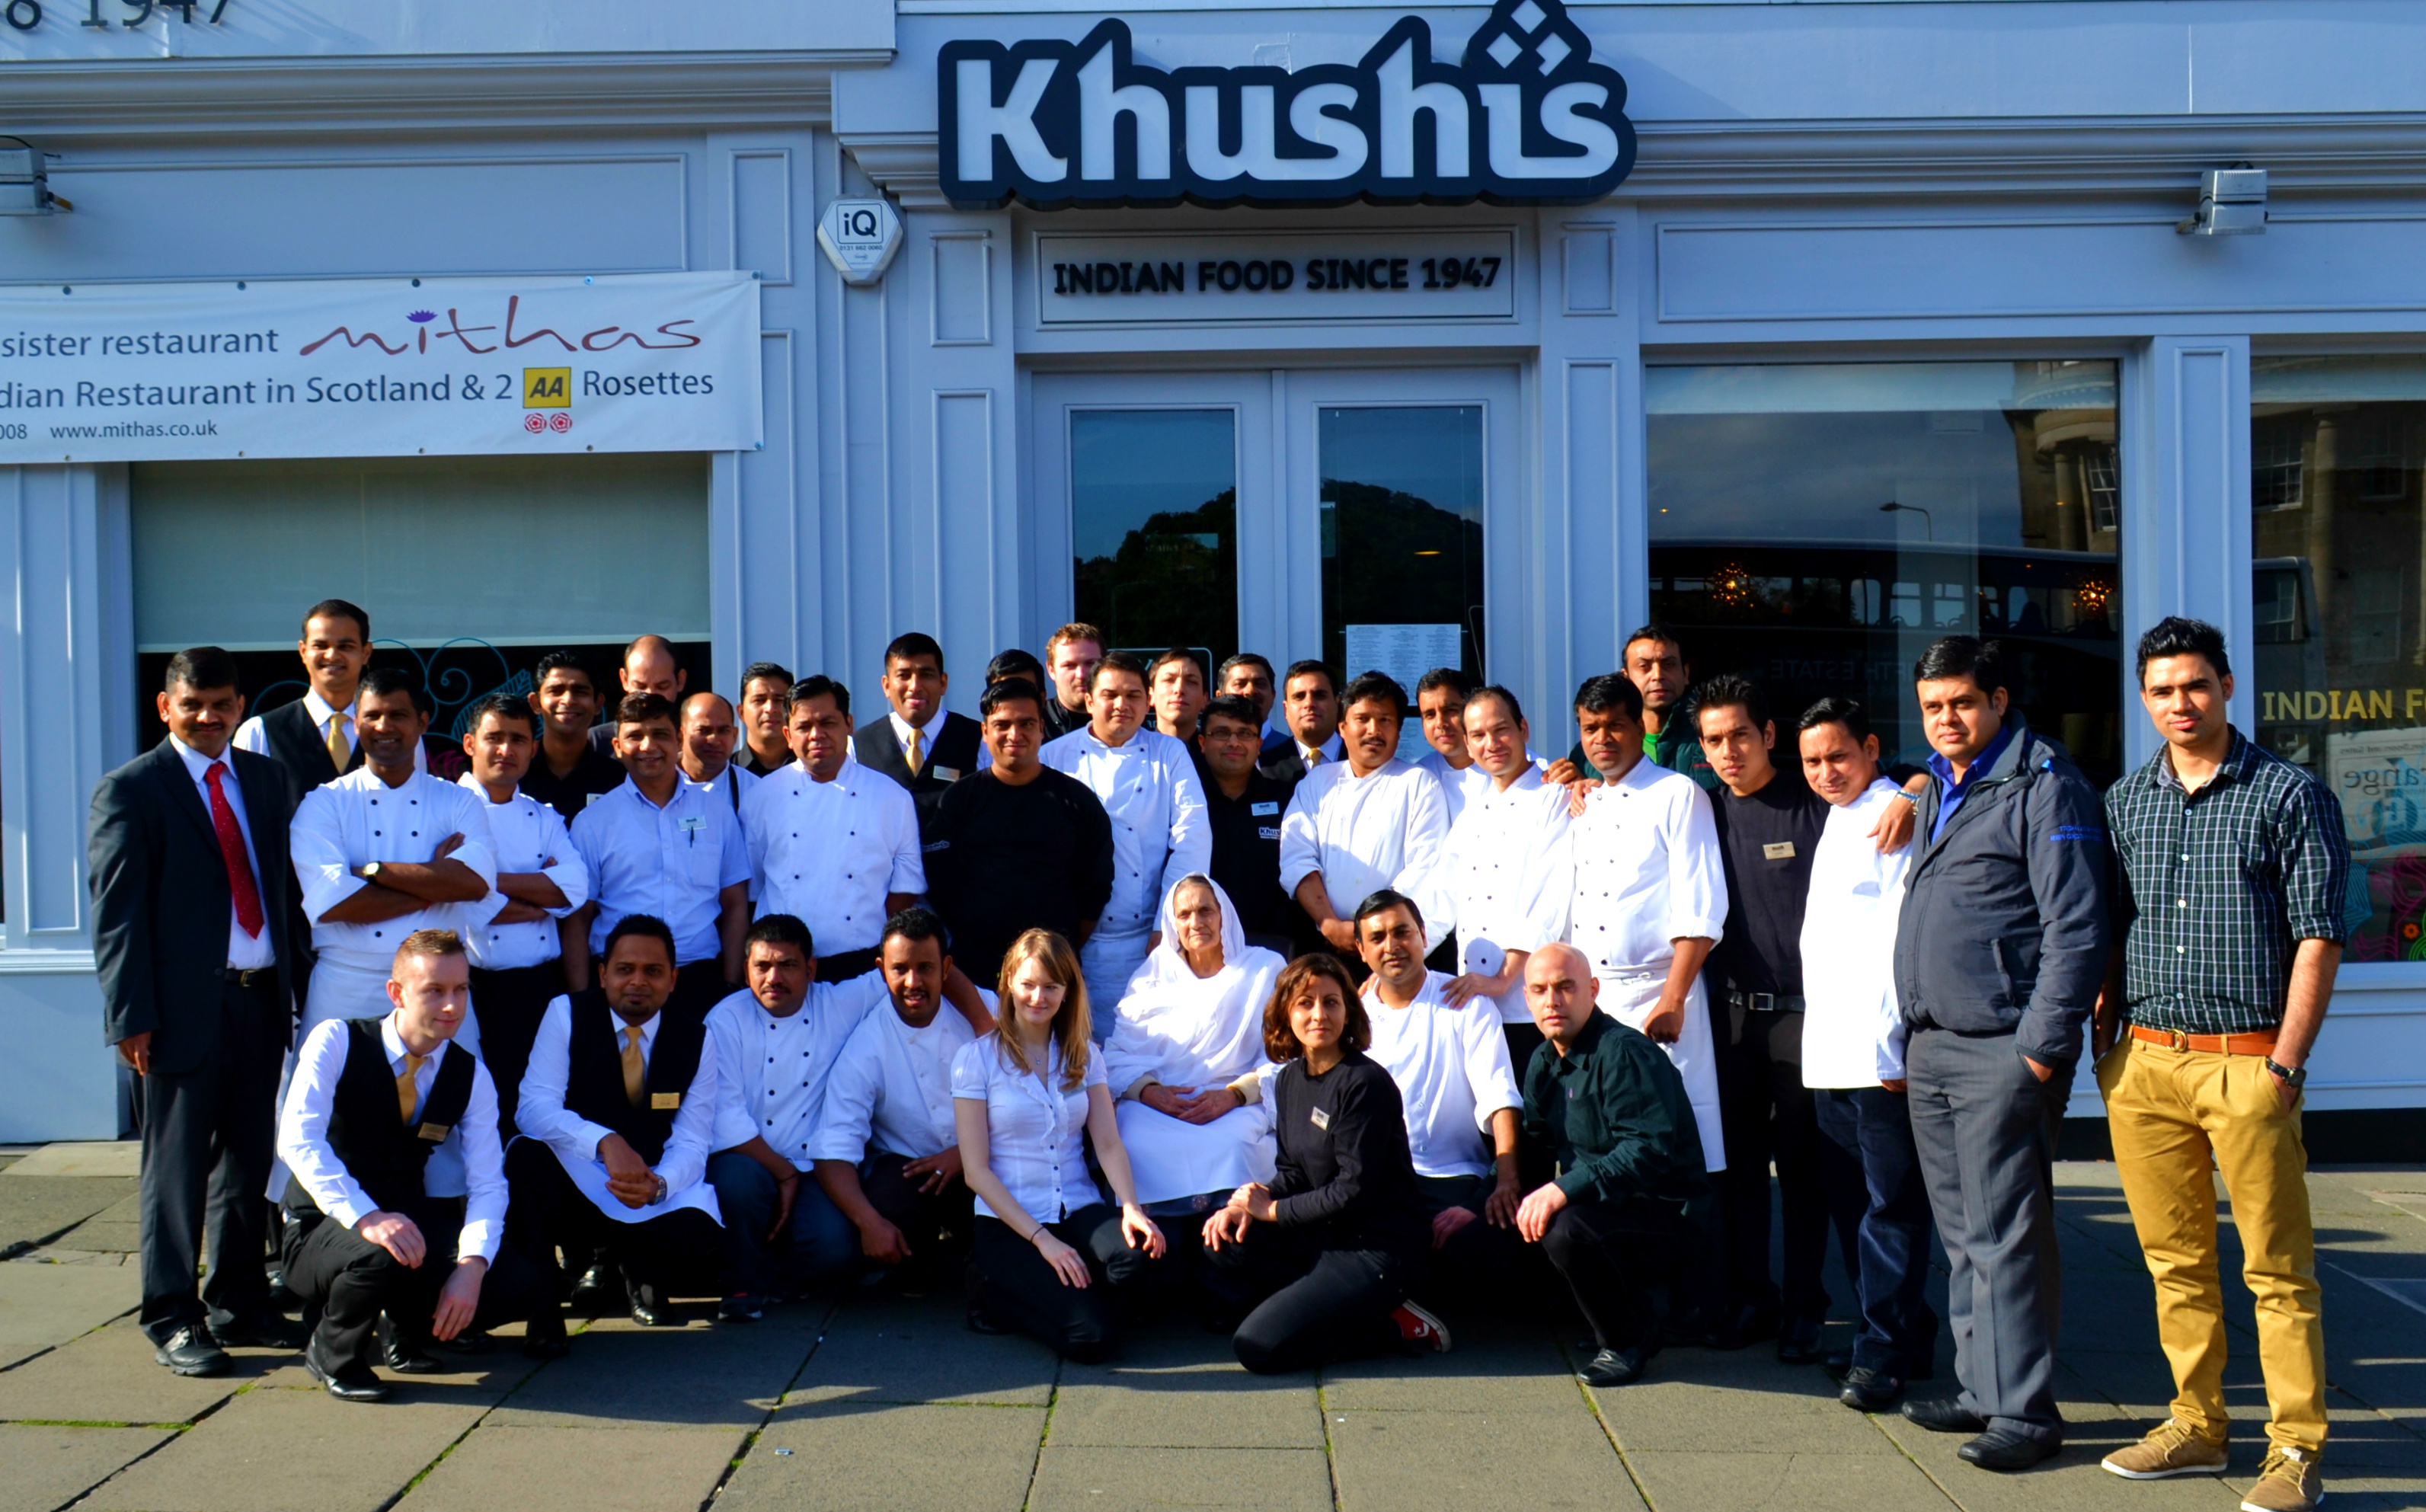 Khushis Indian restaurants Edinburgh